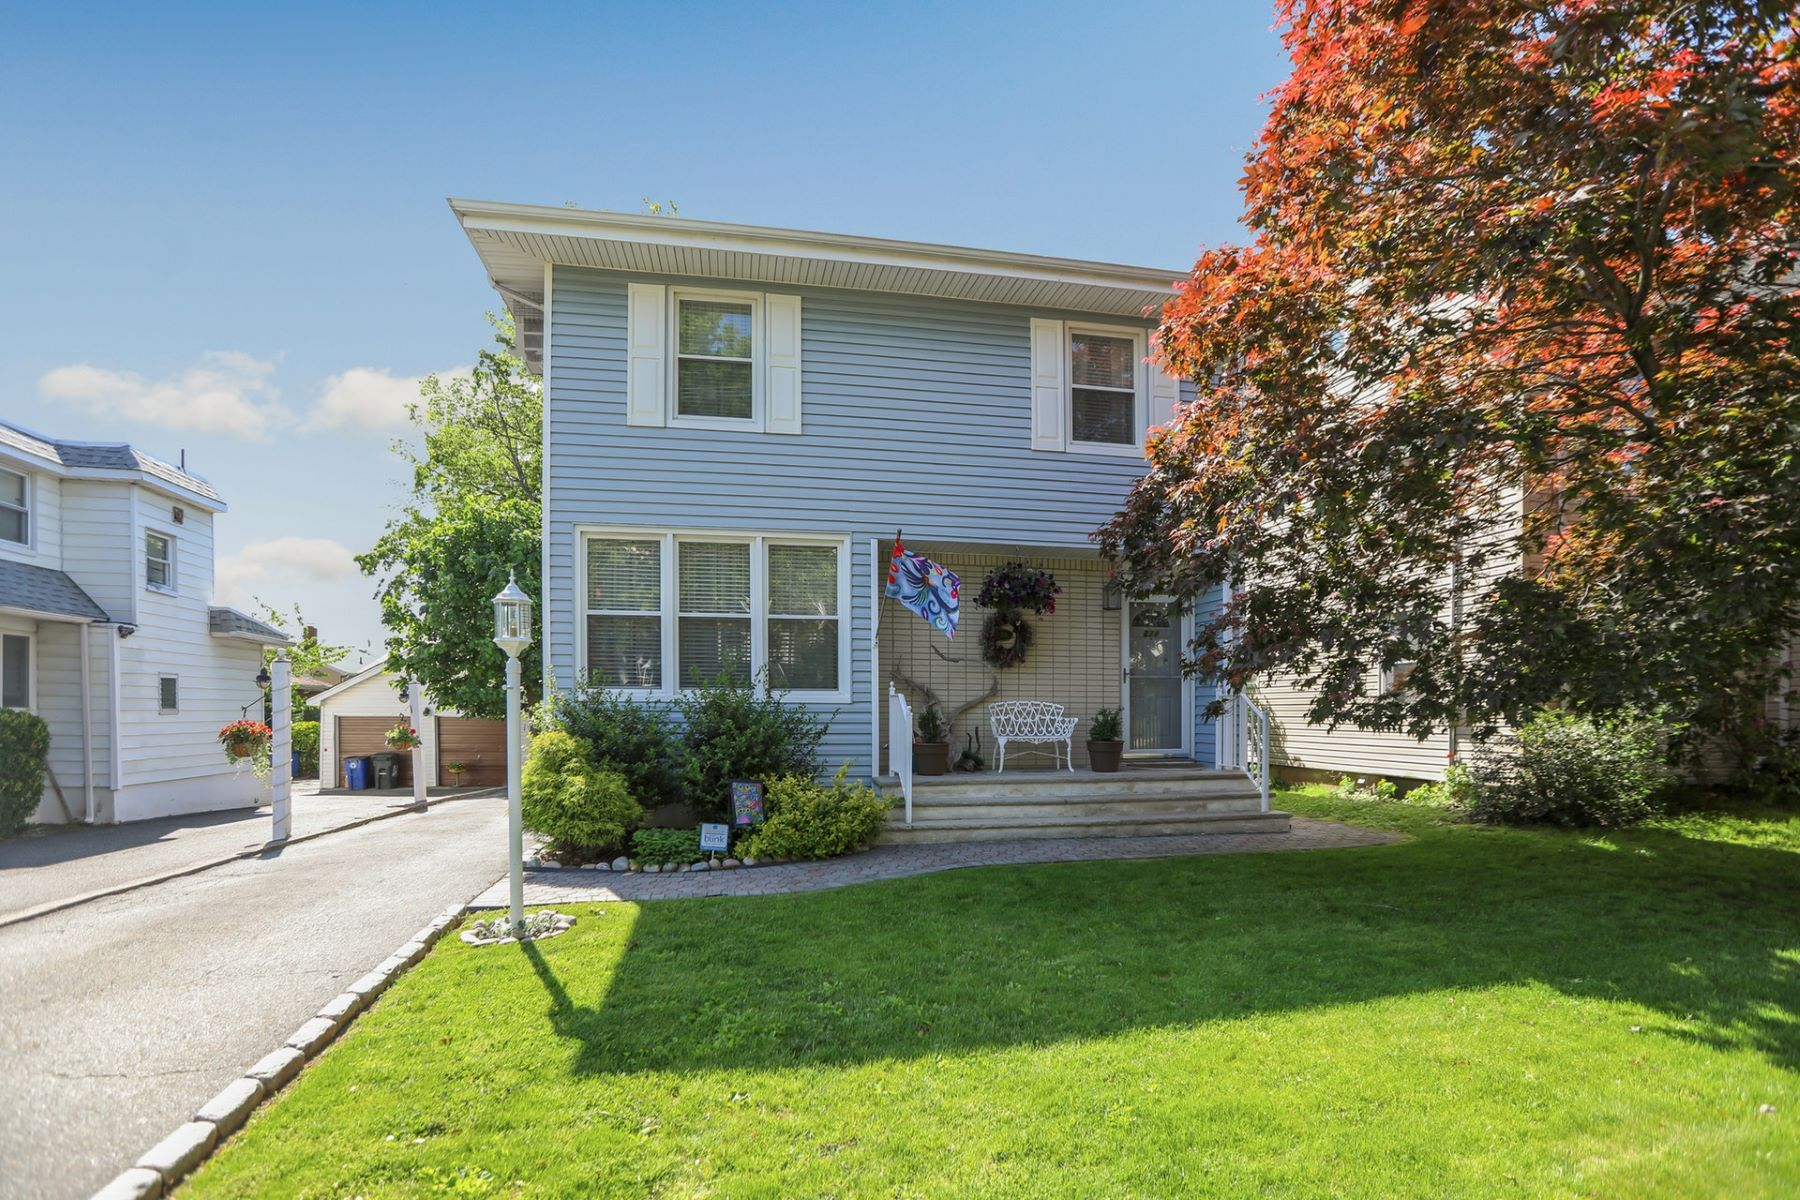 Single Family Homes للـ Sale في Move-in-ready, sun-lit Colonial 238 Terrace Ave, Hasbrouck Heights, New Jersey 07604 United States